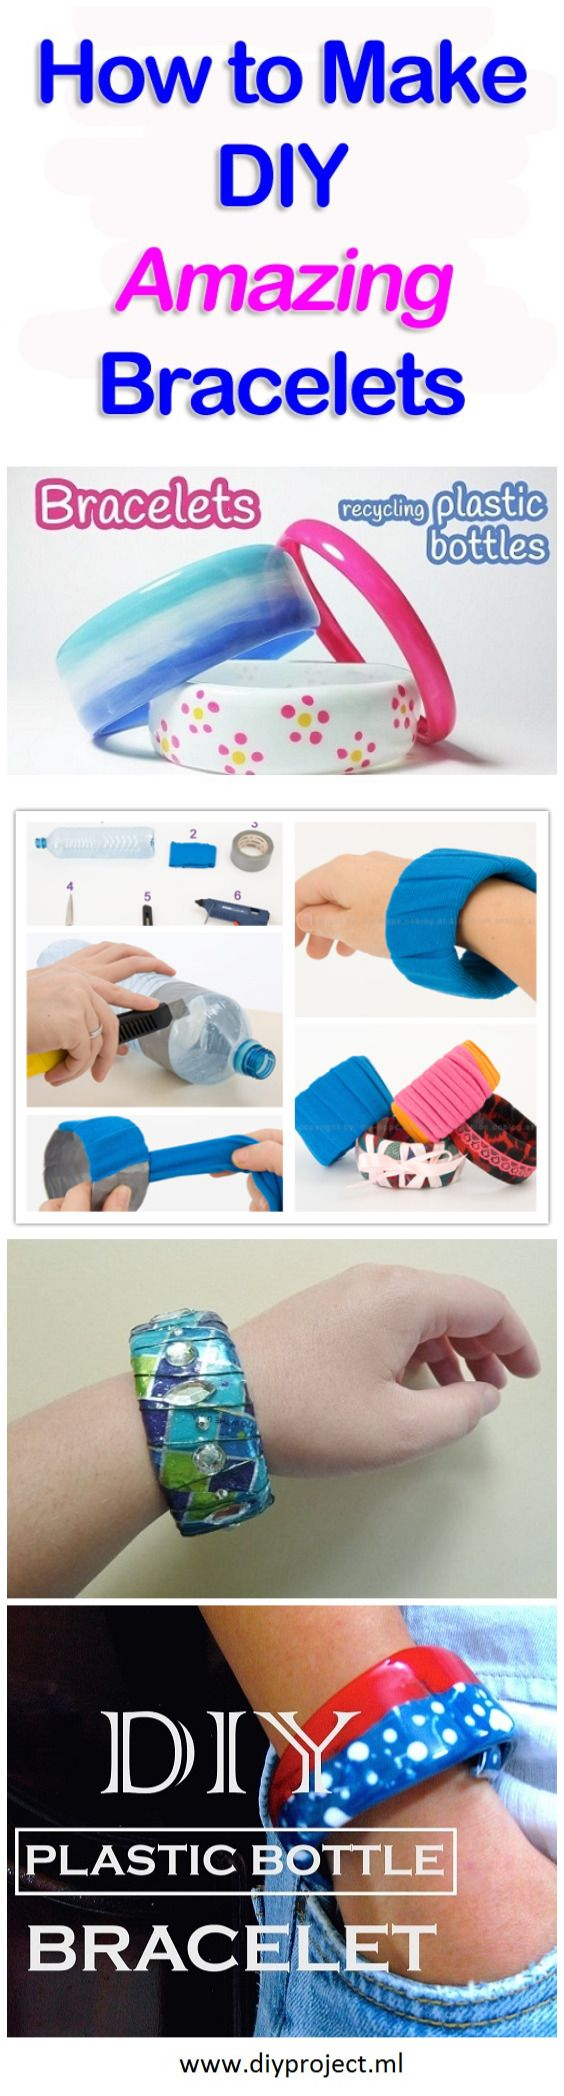 How to Make Amazing Bracelets Recycling Plastic Bottles